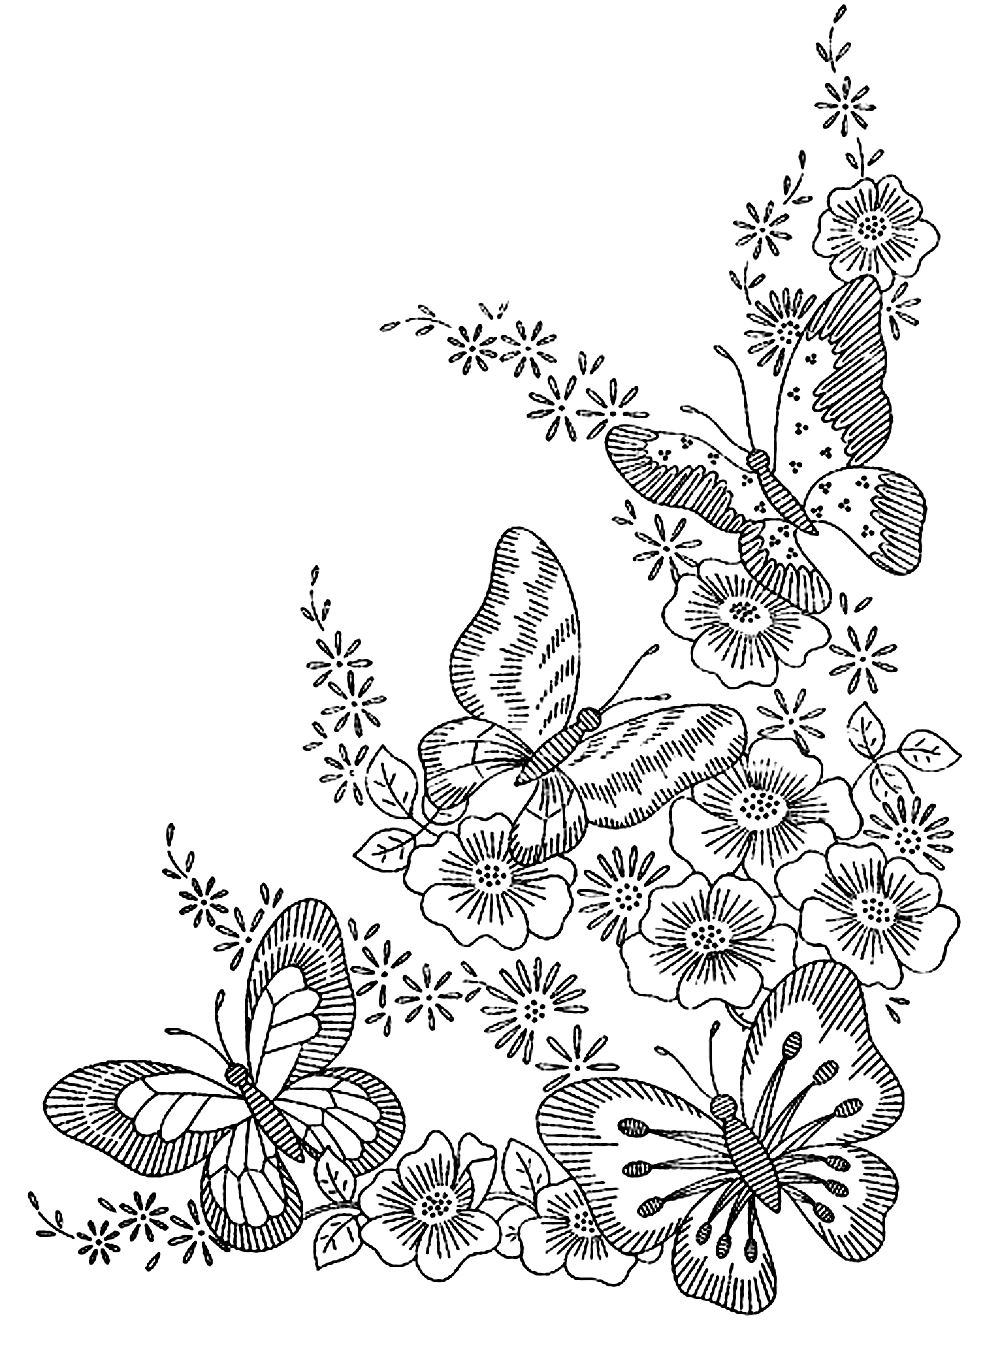 Difficult butterfly coloring pages - Butterflies In The Nature